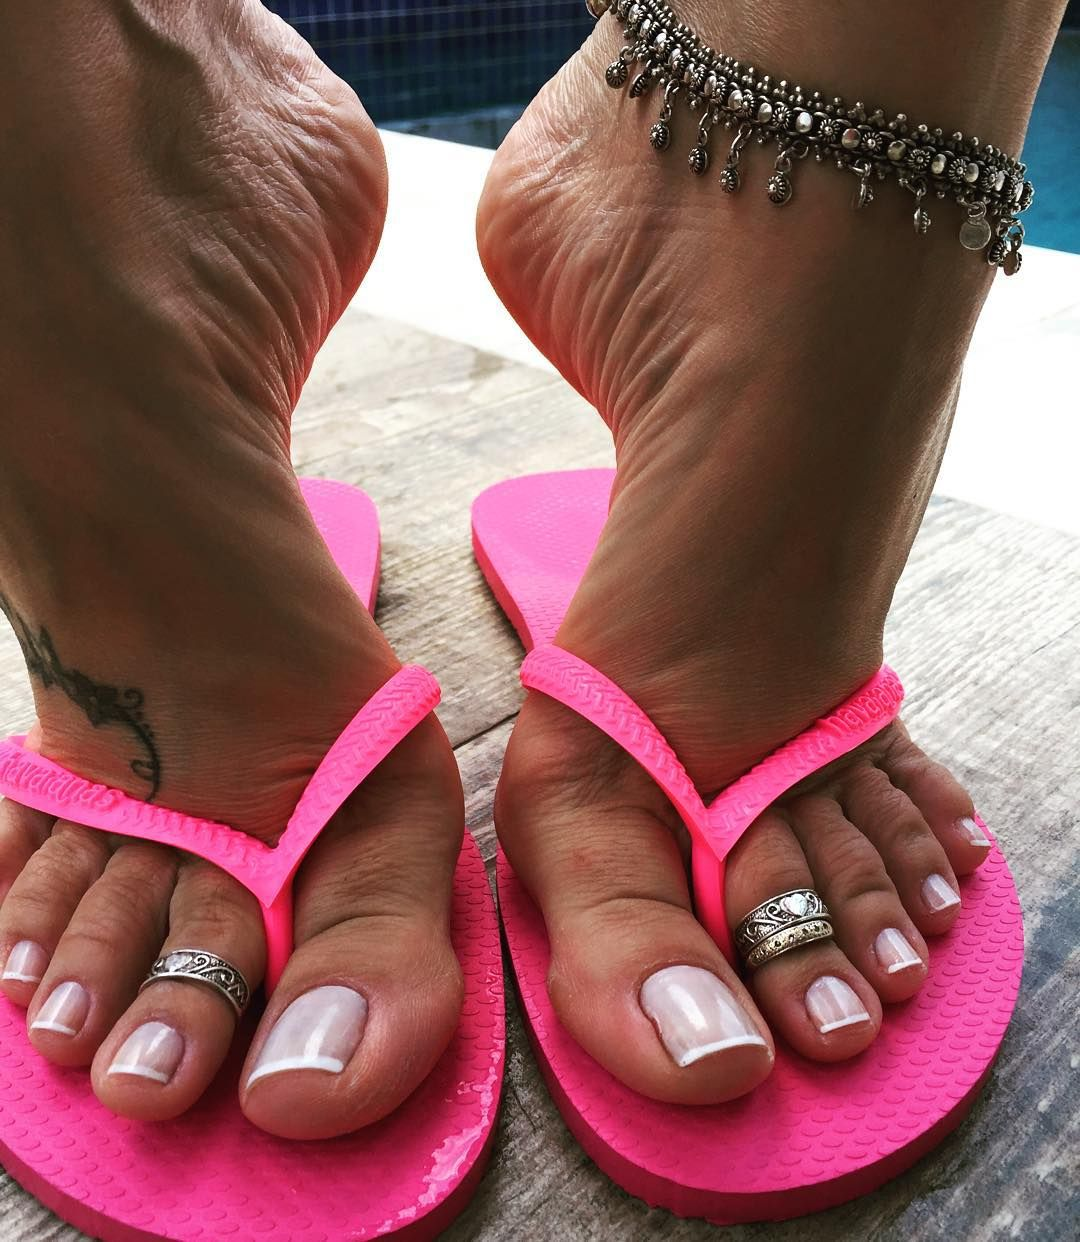 Want sexy feet in summers